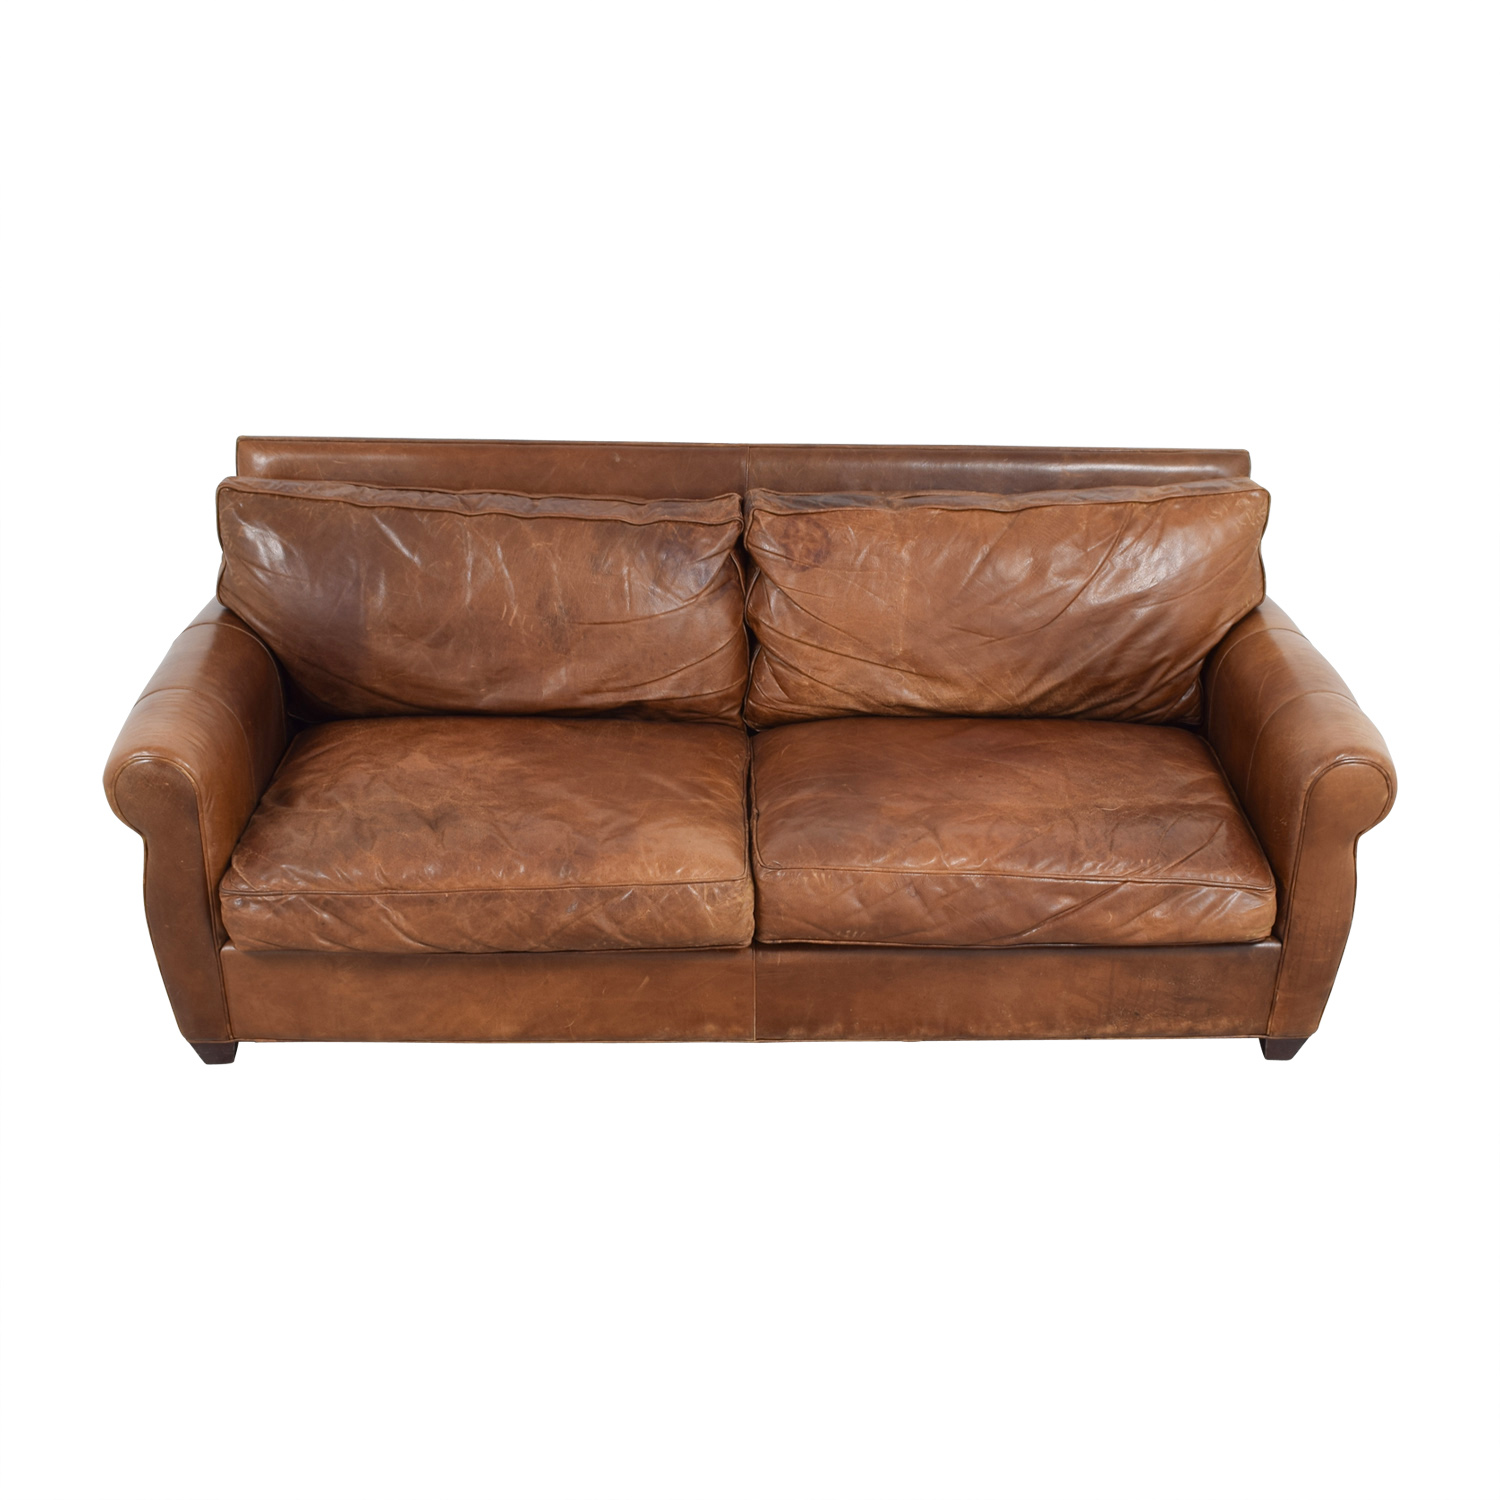 arhaus leather sofa index mulberry bed 85 off natuzzi brown couch sofas